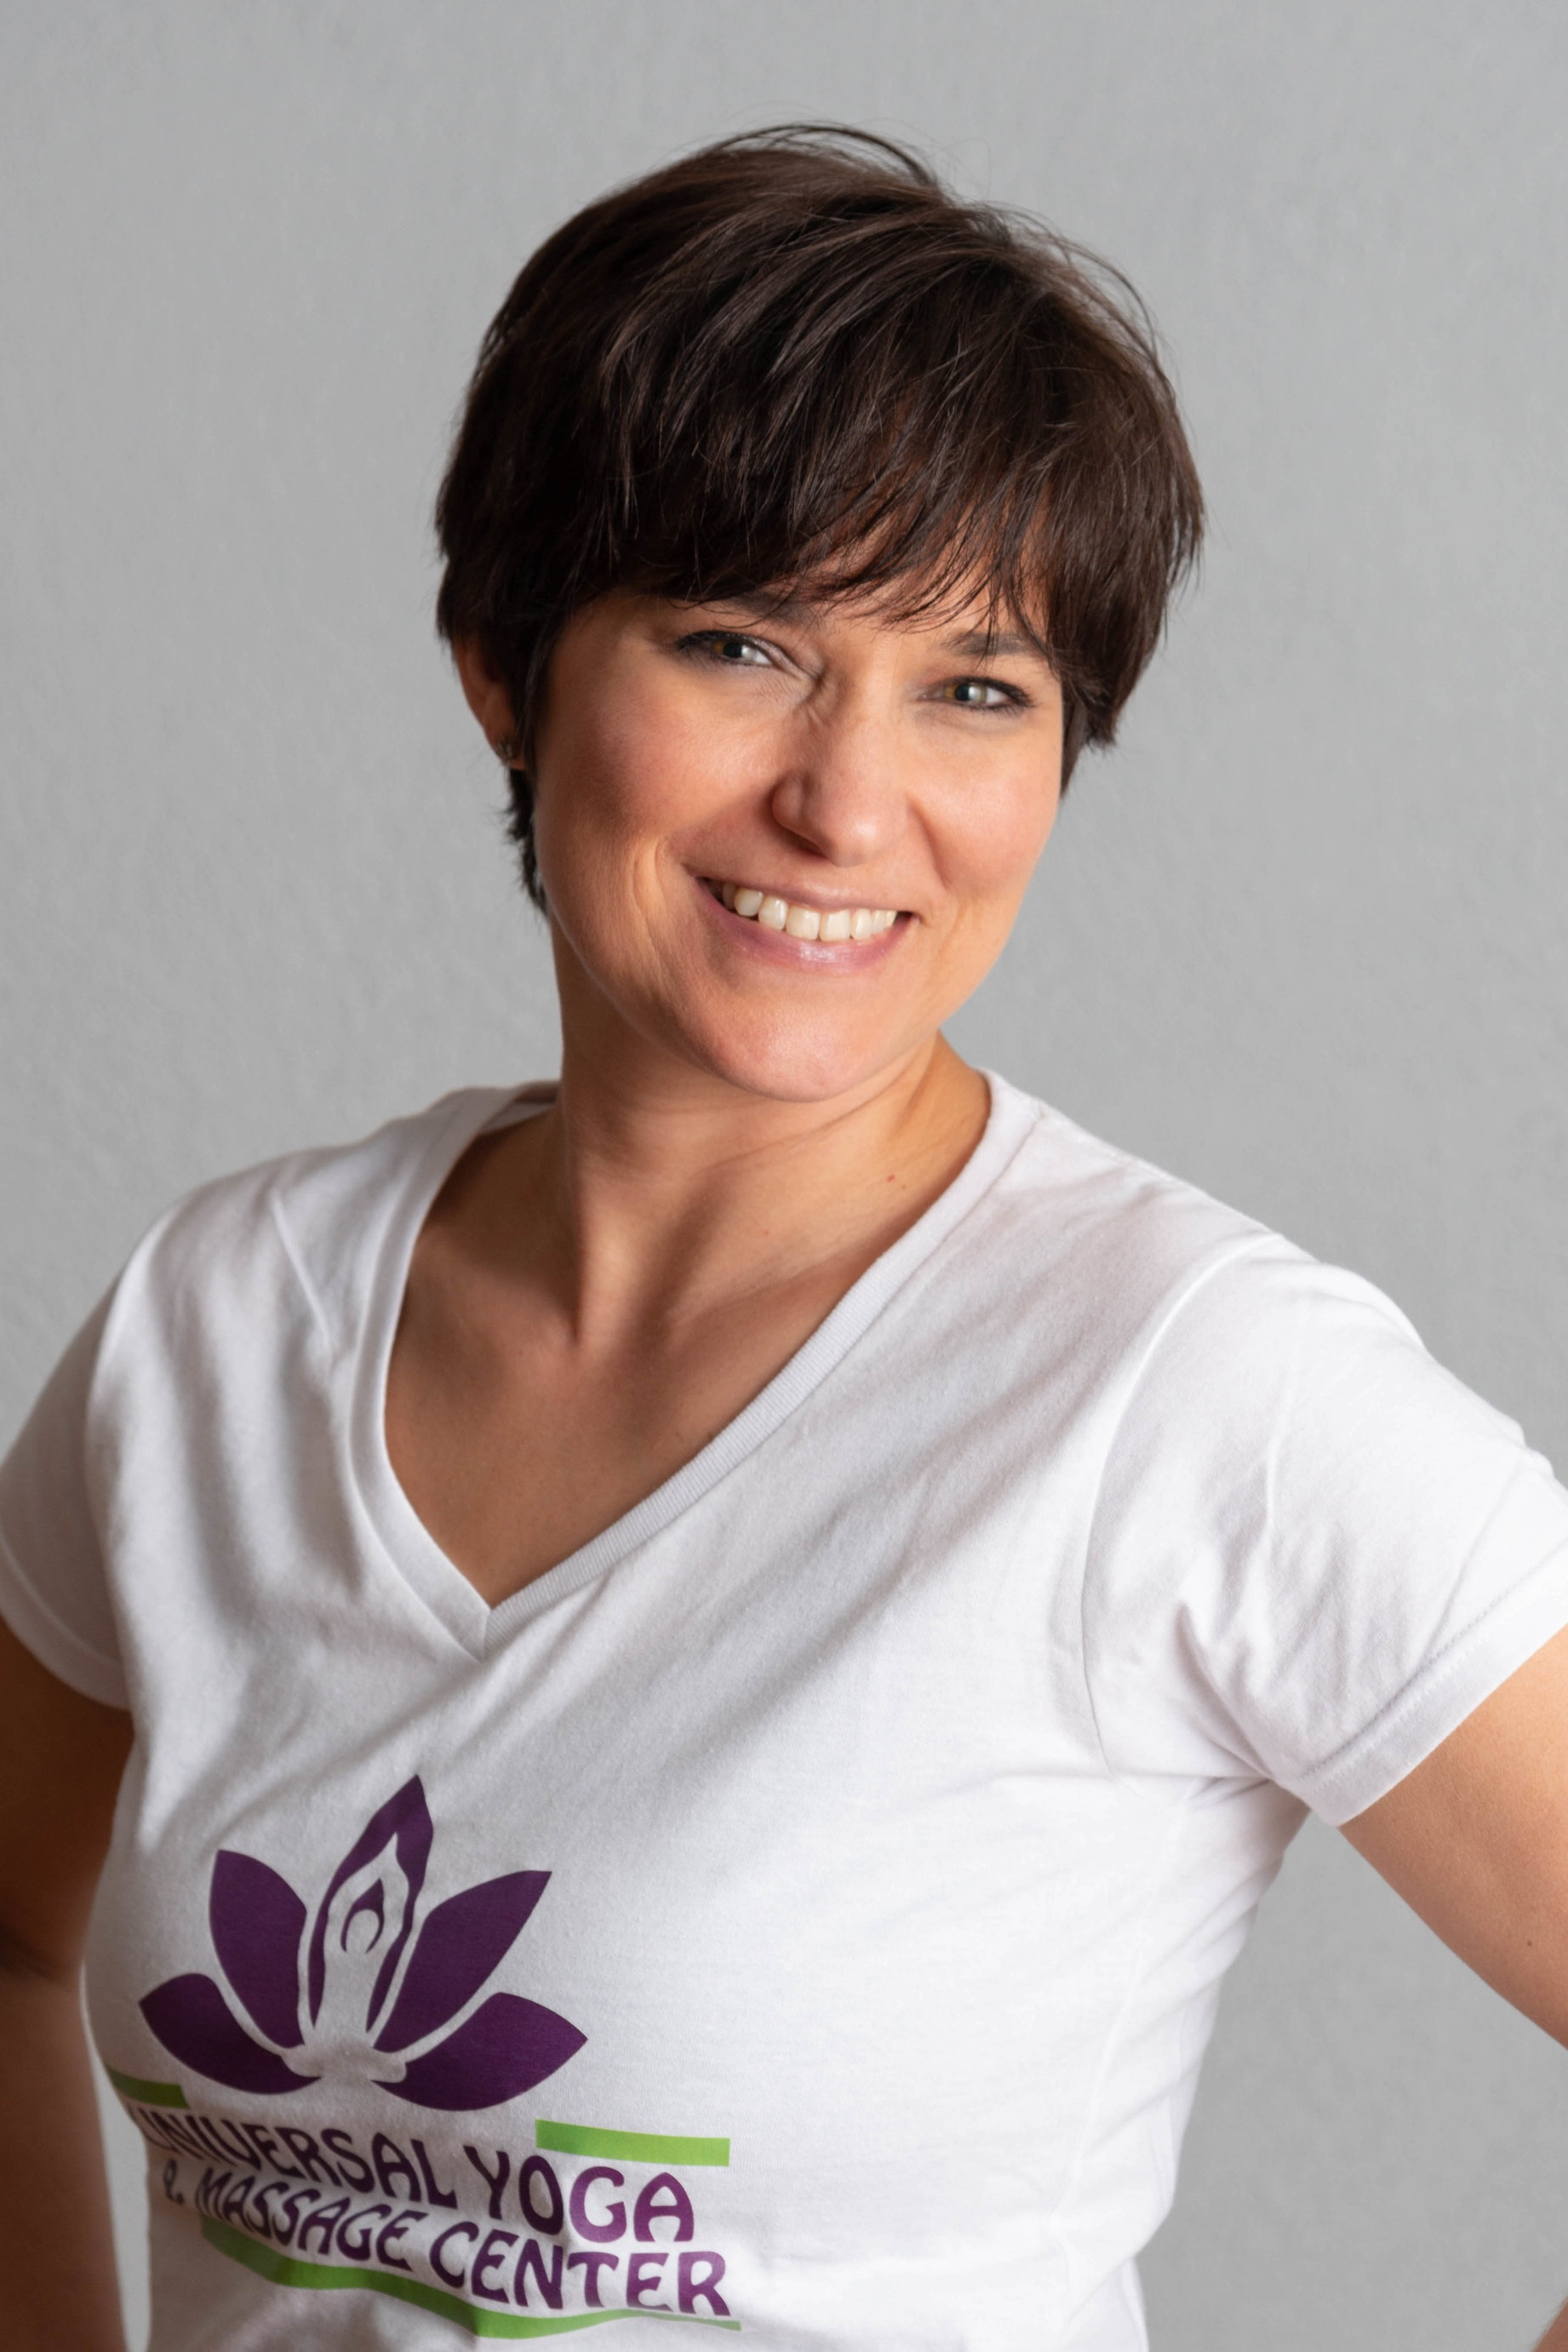 Audrey Ventura, LMT, C-IAYT, E-RYT   Audrey Ventura is a New York State Licensed Massage Therapist, a Nationally Certified Medical Massage Therapist, and the owner of Universal Yoga and Massage Center. She has over 20 years of experience in Massage Therapy. She is also a Certified Yoga Therapist through the International Association of Yoga Therapists, a Phoenix Rising Yoga Therapist, and certified in Yoga for the Low Back. Audrey's specific certifications include medical massage, geriatric massage, neuromuscular massage, sports massage, therapeutic stretching, neuromuscular re-education, orthopedic evaluation, and specific treatment for the neck, jaw, upper back, lower back, pelvis, legs, shoulders & arms. She is also certified in the Jaffe-Mellor Technique. Her specialty is pain relief and pain management and she has been providing that to the New Hartford, NY area for over 20 years!  Audrey is committed to helping you heal and maintain your health. She is continually educating herself and bringing that information into her business to give you the best results. Her great knowledge of the body and her experience give her the ability to assess and change your treatment or yoga practice whenever needed. She welcomes the opportunity to earn your trust and deliver you the best service in the industry.